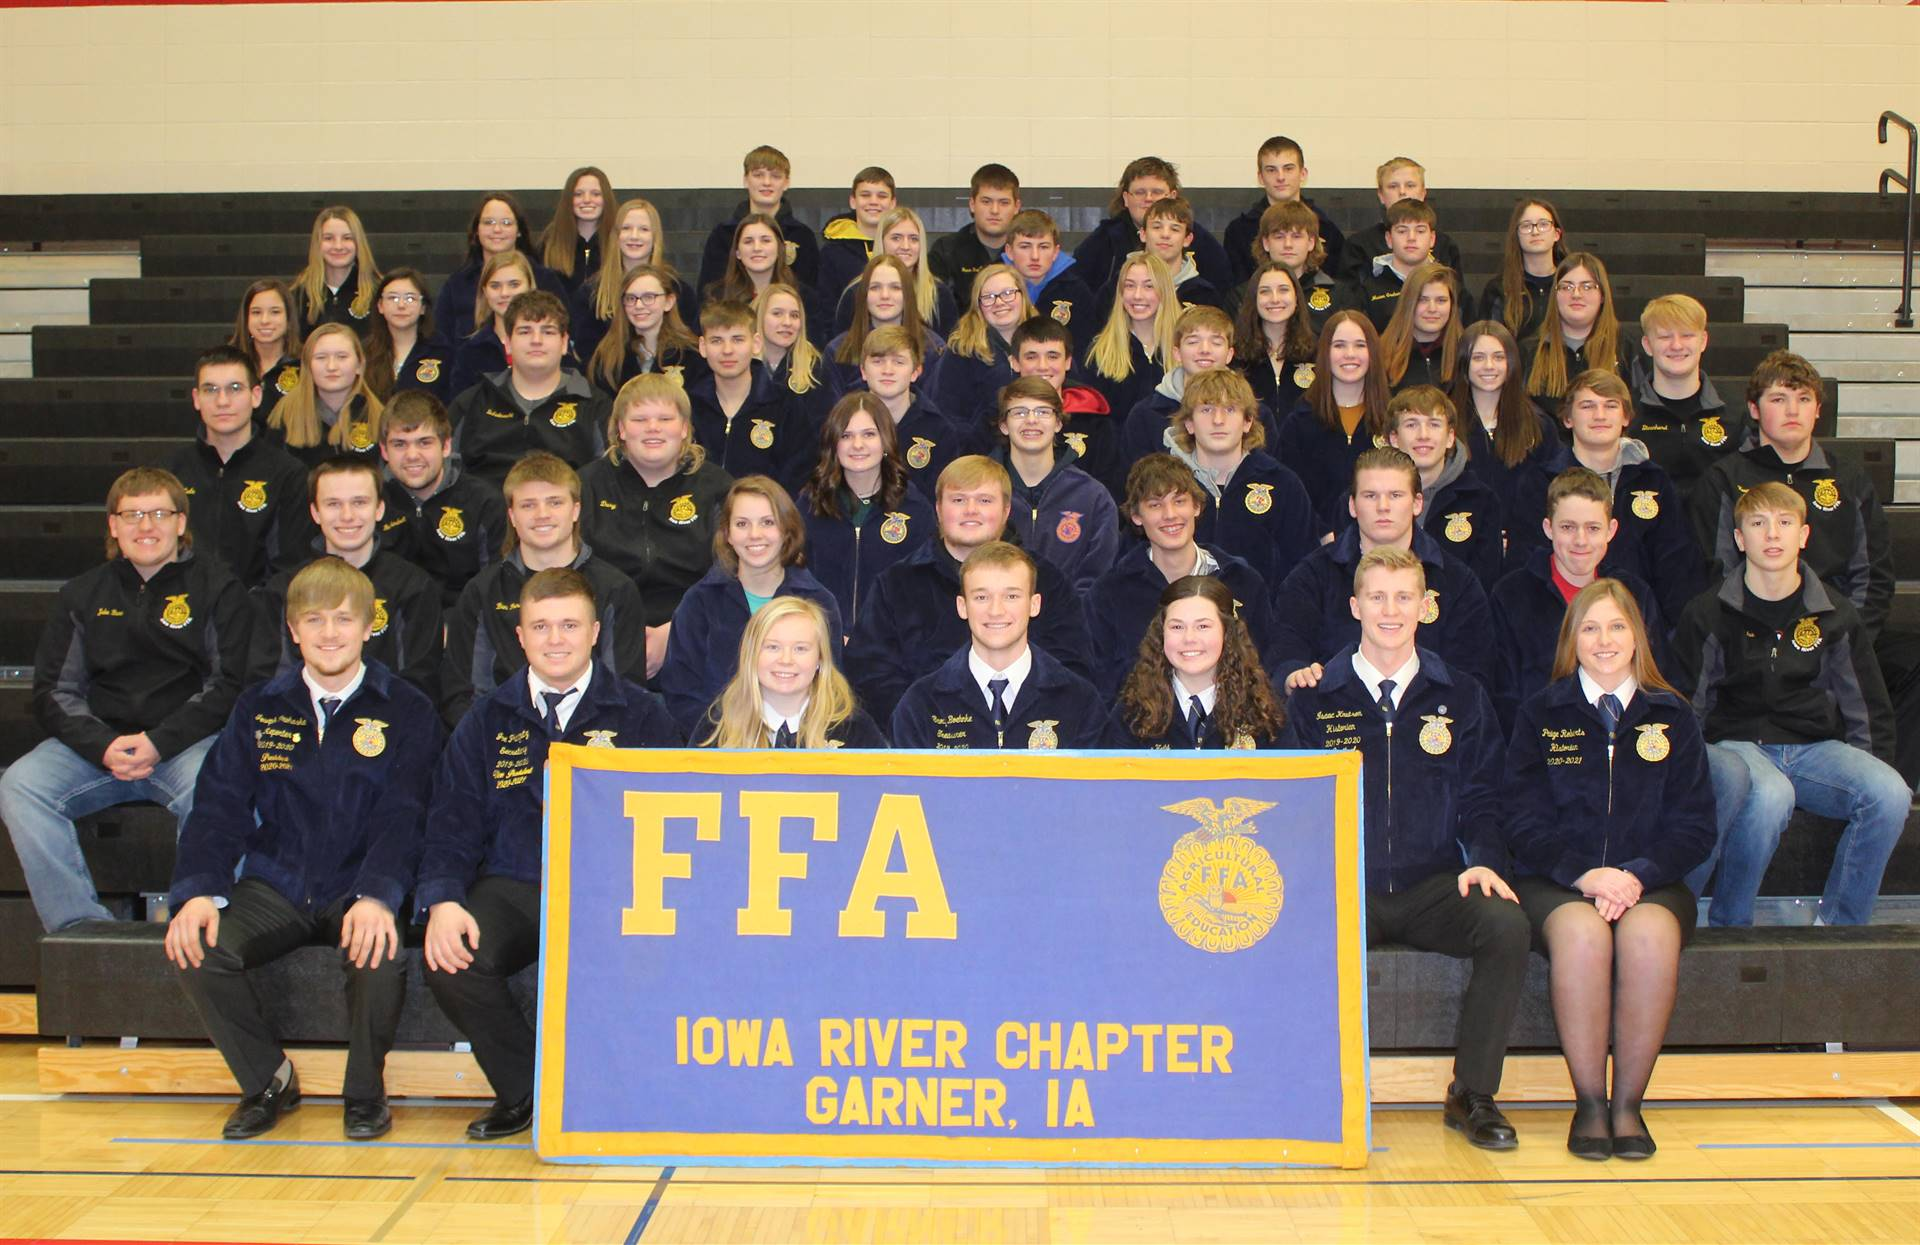 FFA students posing for a group photo on risers